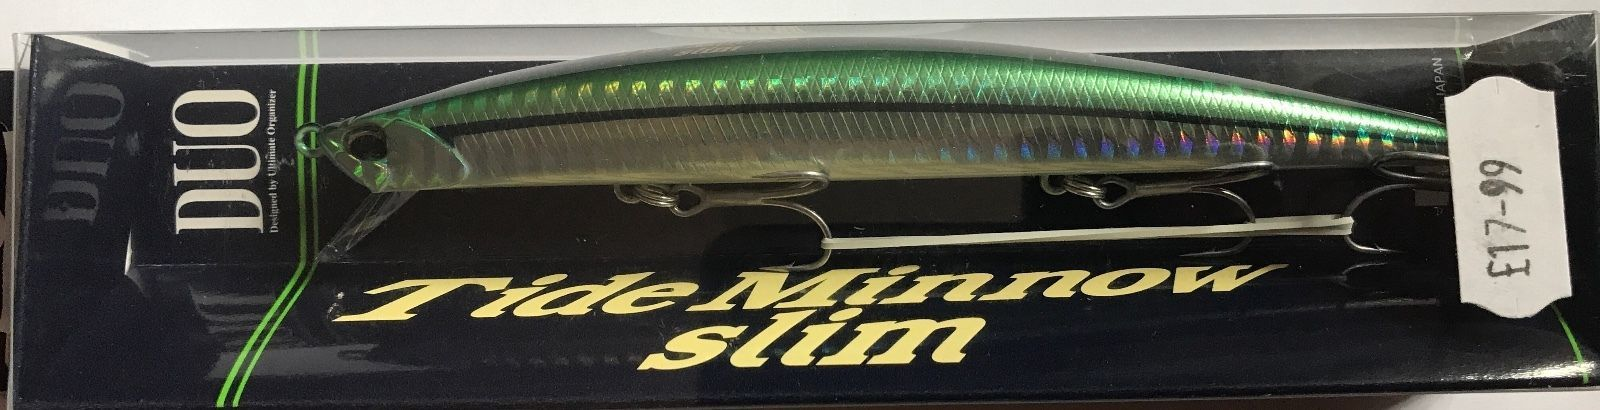 Duo Tide Minnow Slim 140 Bass Fishing Lure Floating Shallow Diving 140mm 18g